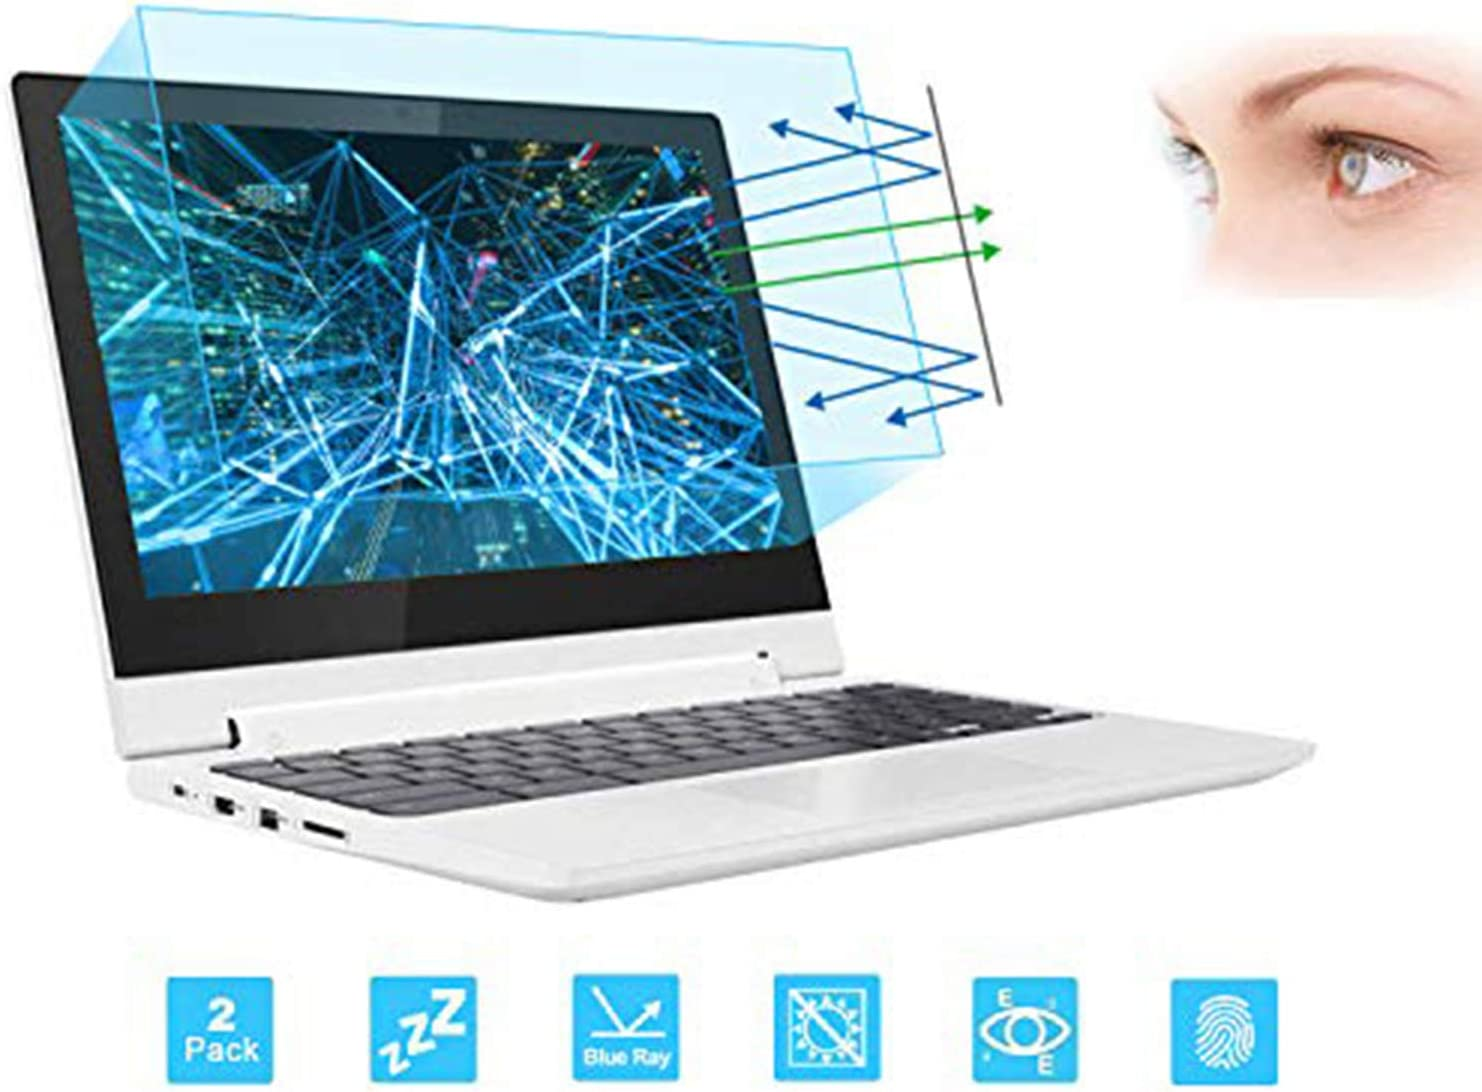 "2 Pack 11.6"" Laptop Screen Protector -Blue Light Filter, Eye Protection Blue Light Blocking Anti Glare Screen Protector for All 11.6"" 16:9 Laptop (!!!Not Include The Screen Bezel)"